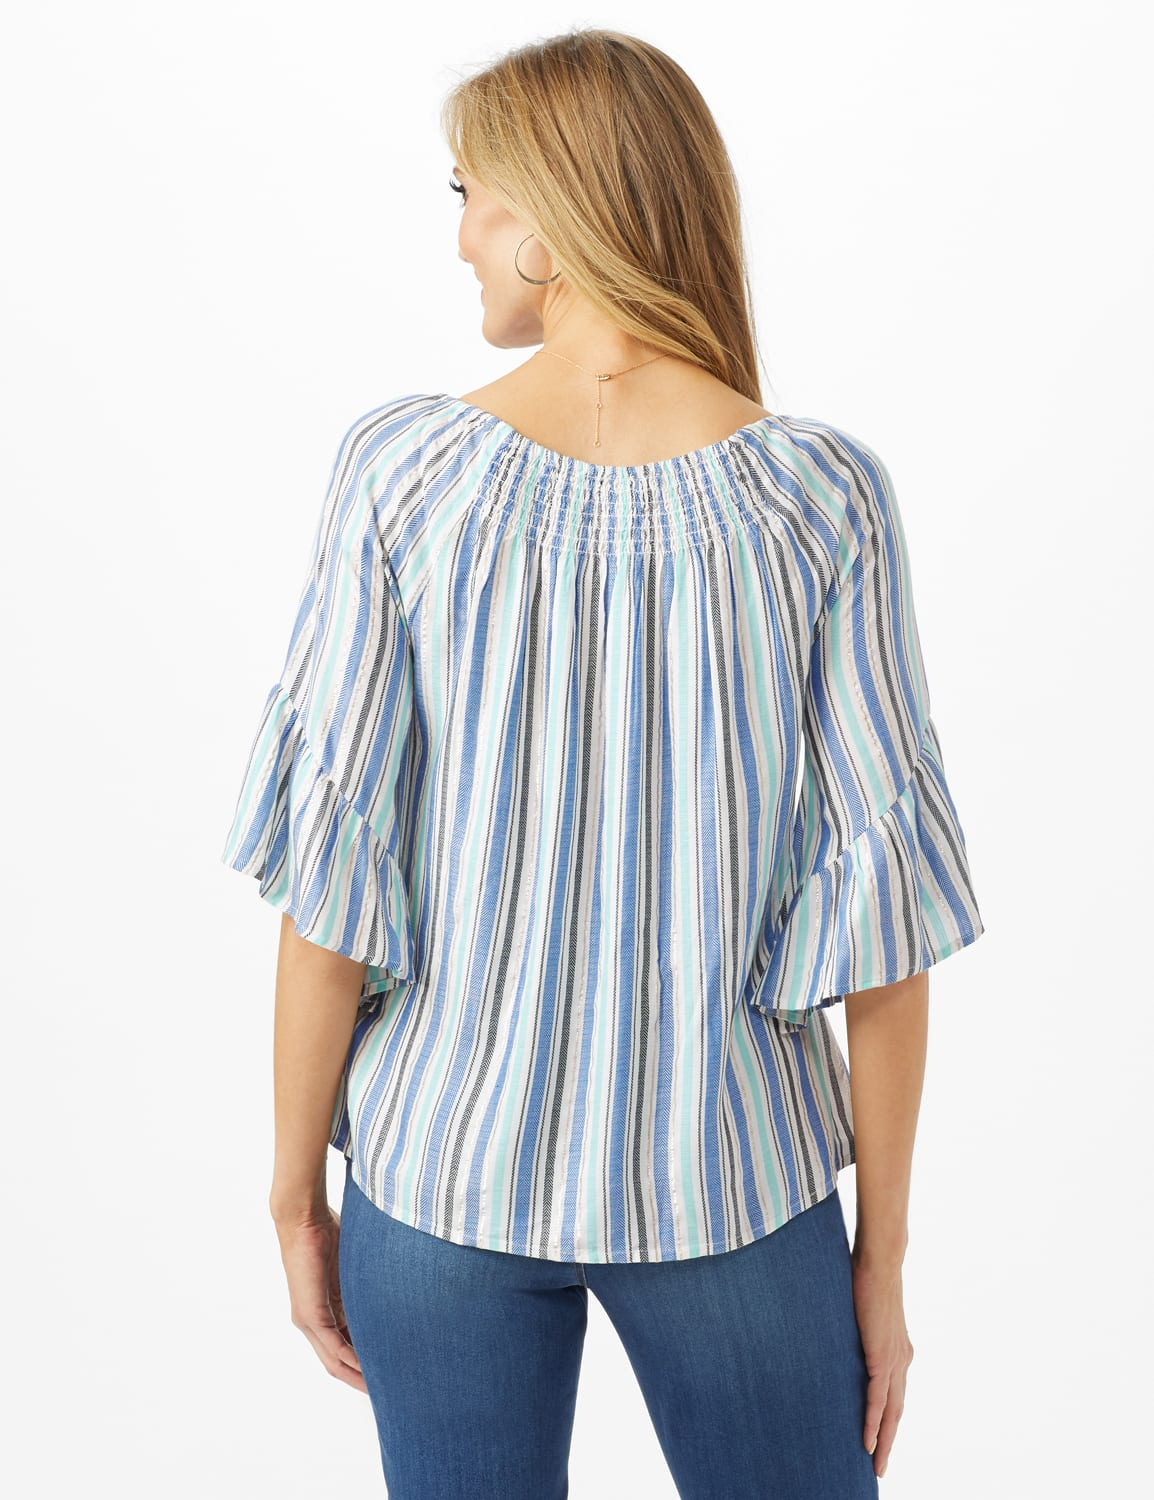 Lurex Textured Stripe Peasant Top - Blue - Back